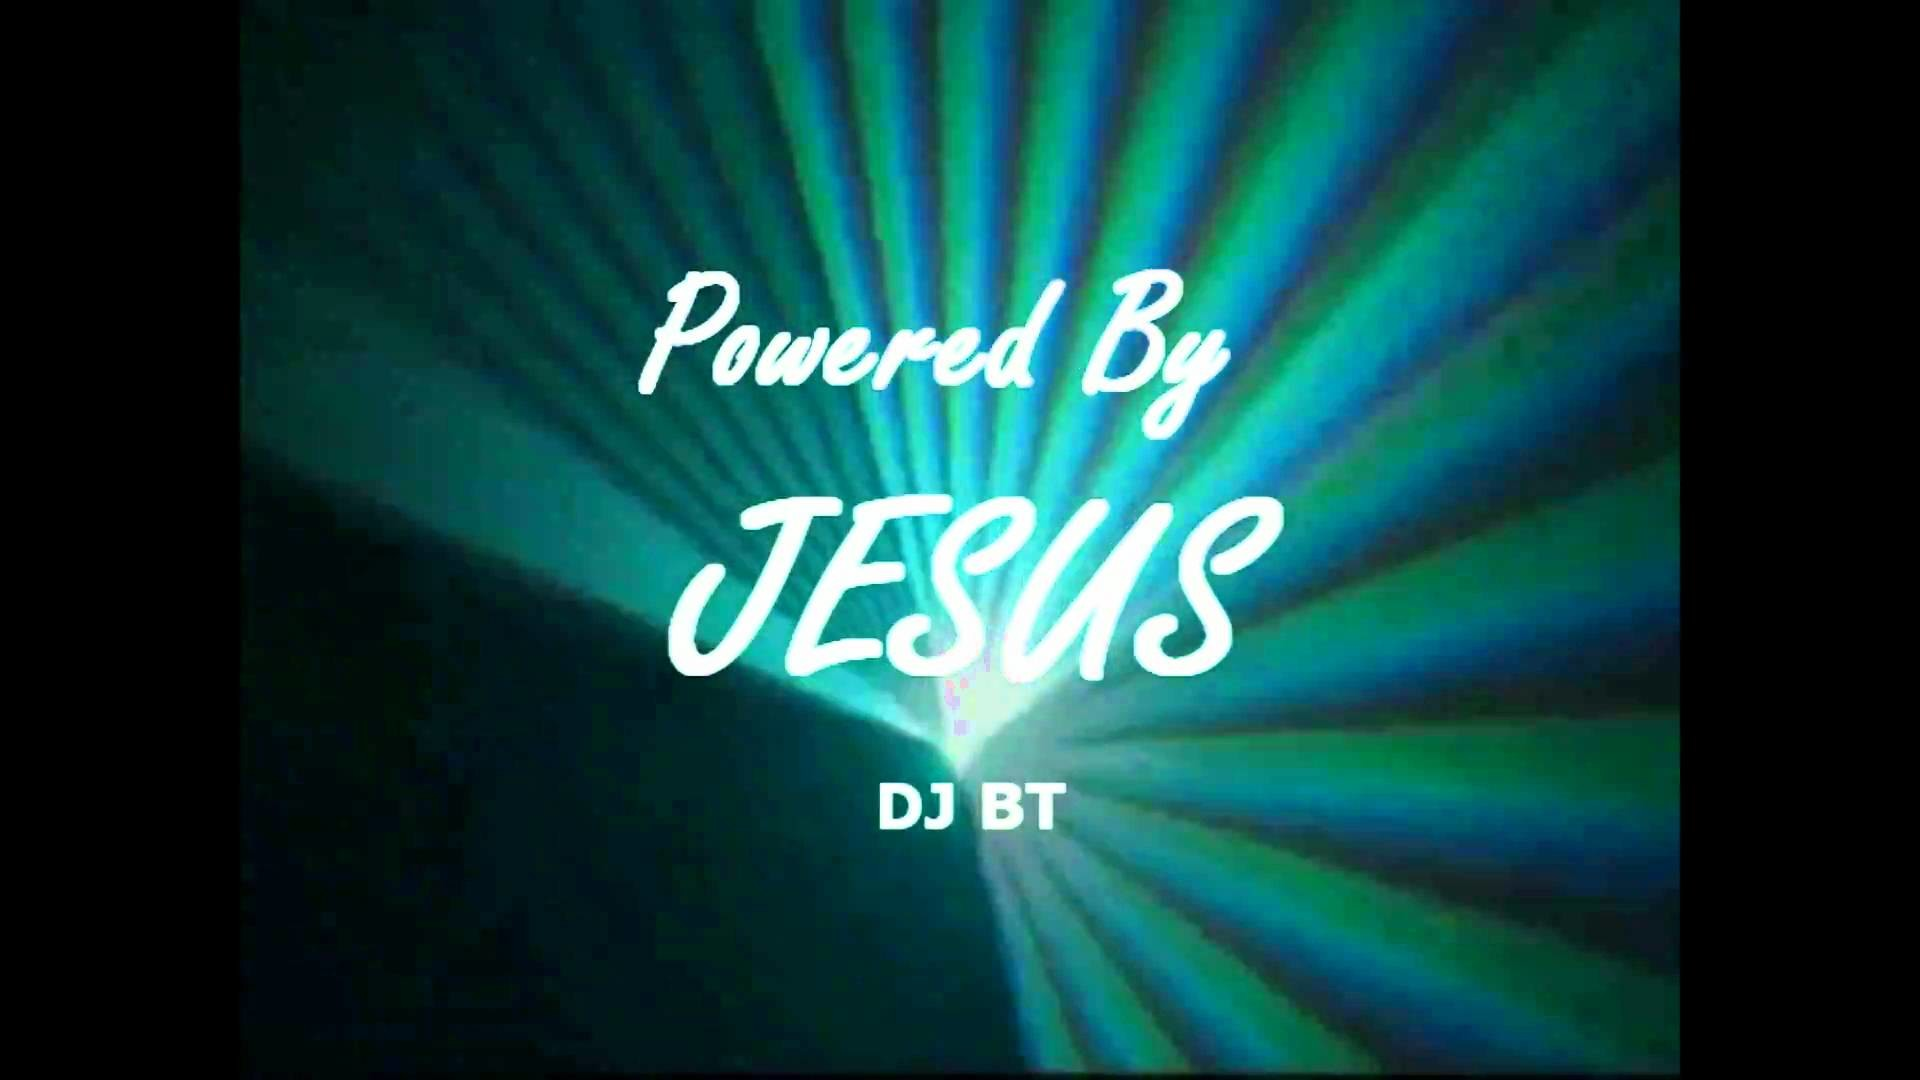 Ambient Praise and Worship Christian Techno Trance Music Dj BT – YouTube